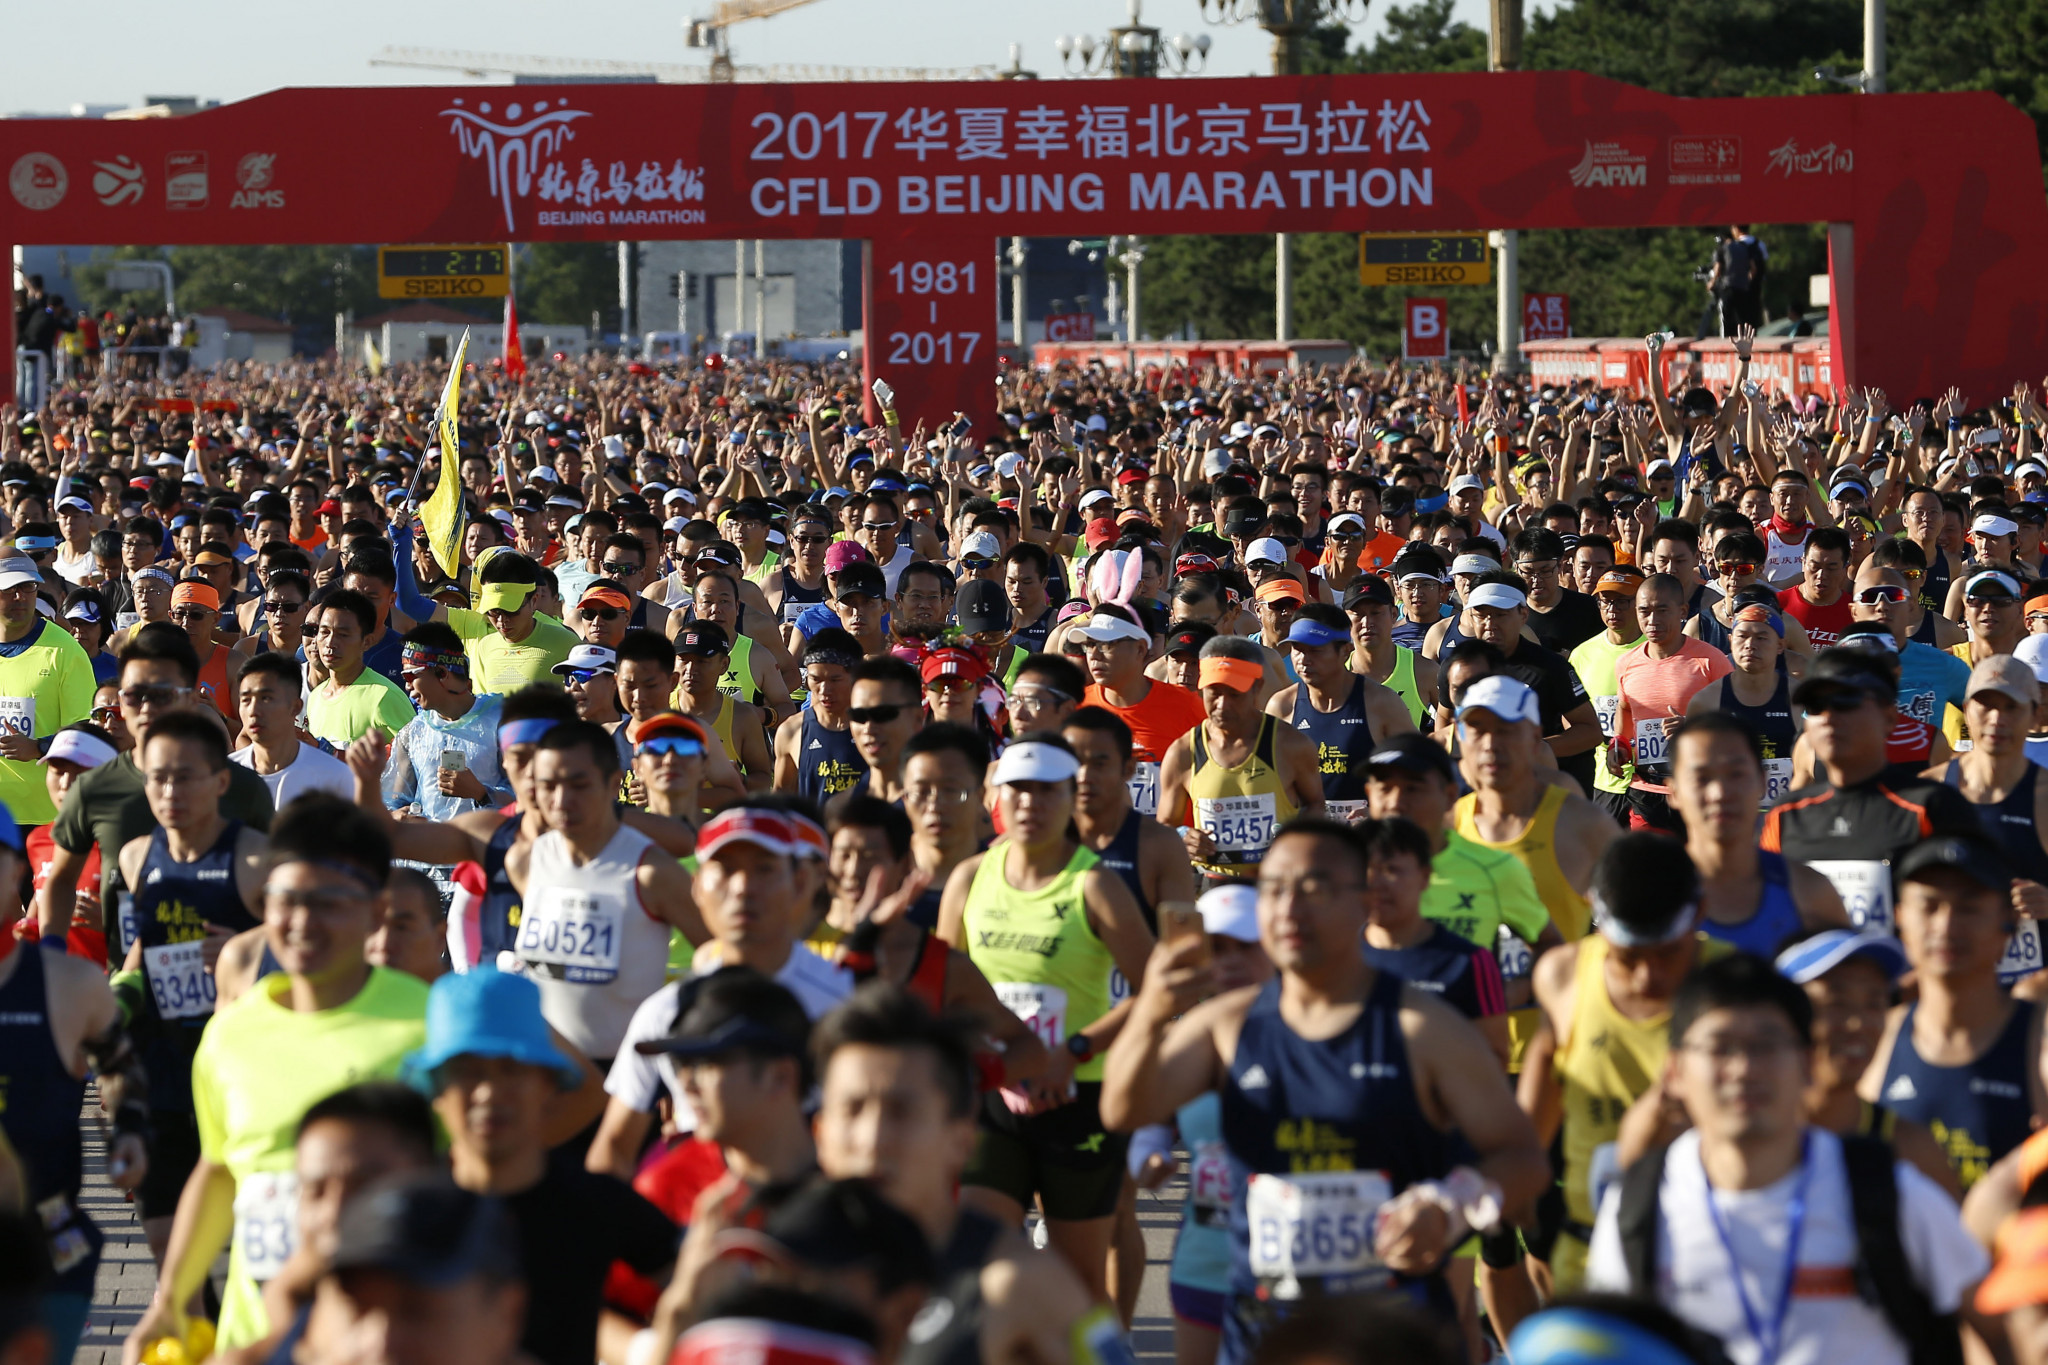 Wang Nan, vice-president of the Chinese Athletics Association, says marathon running in booming in his country ©Getty Images